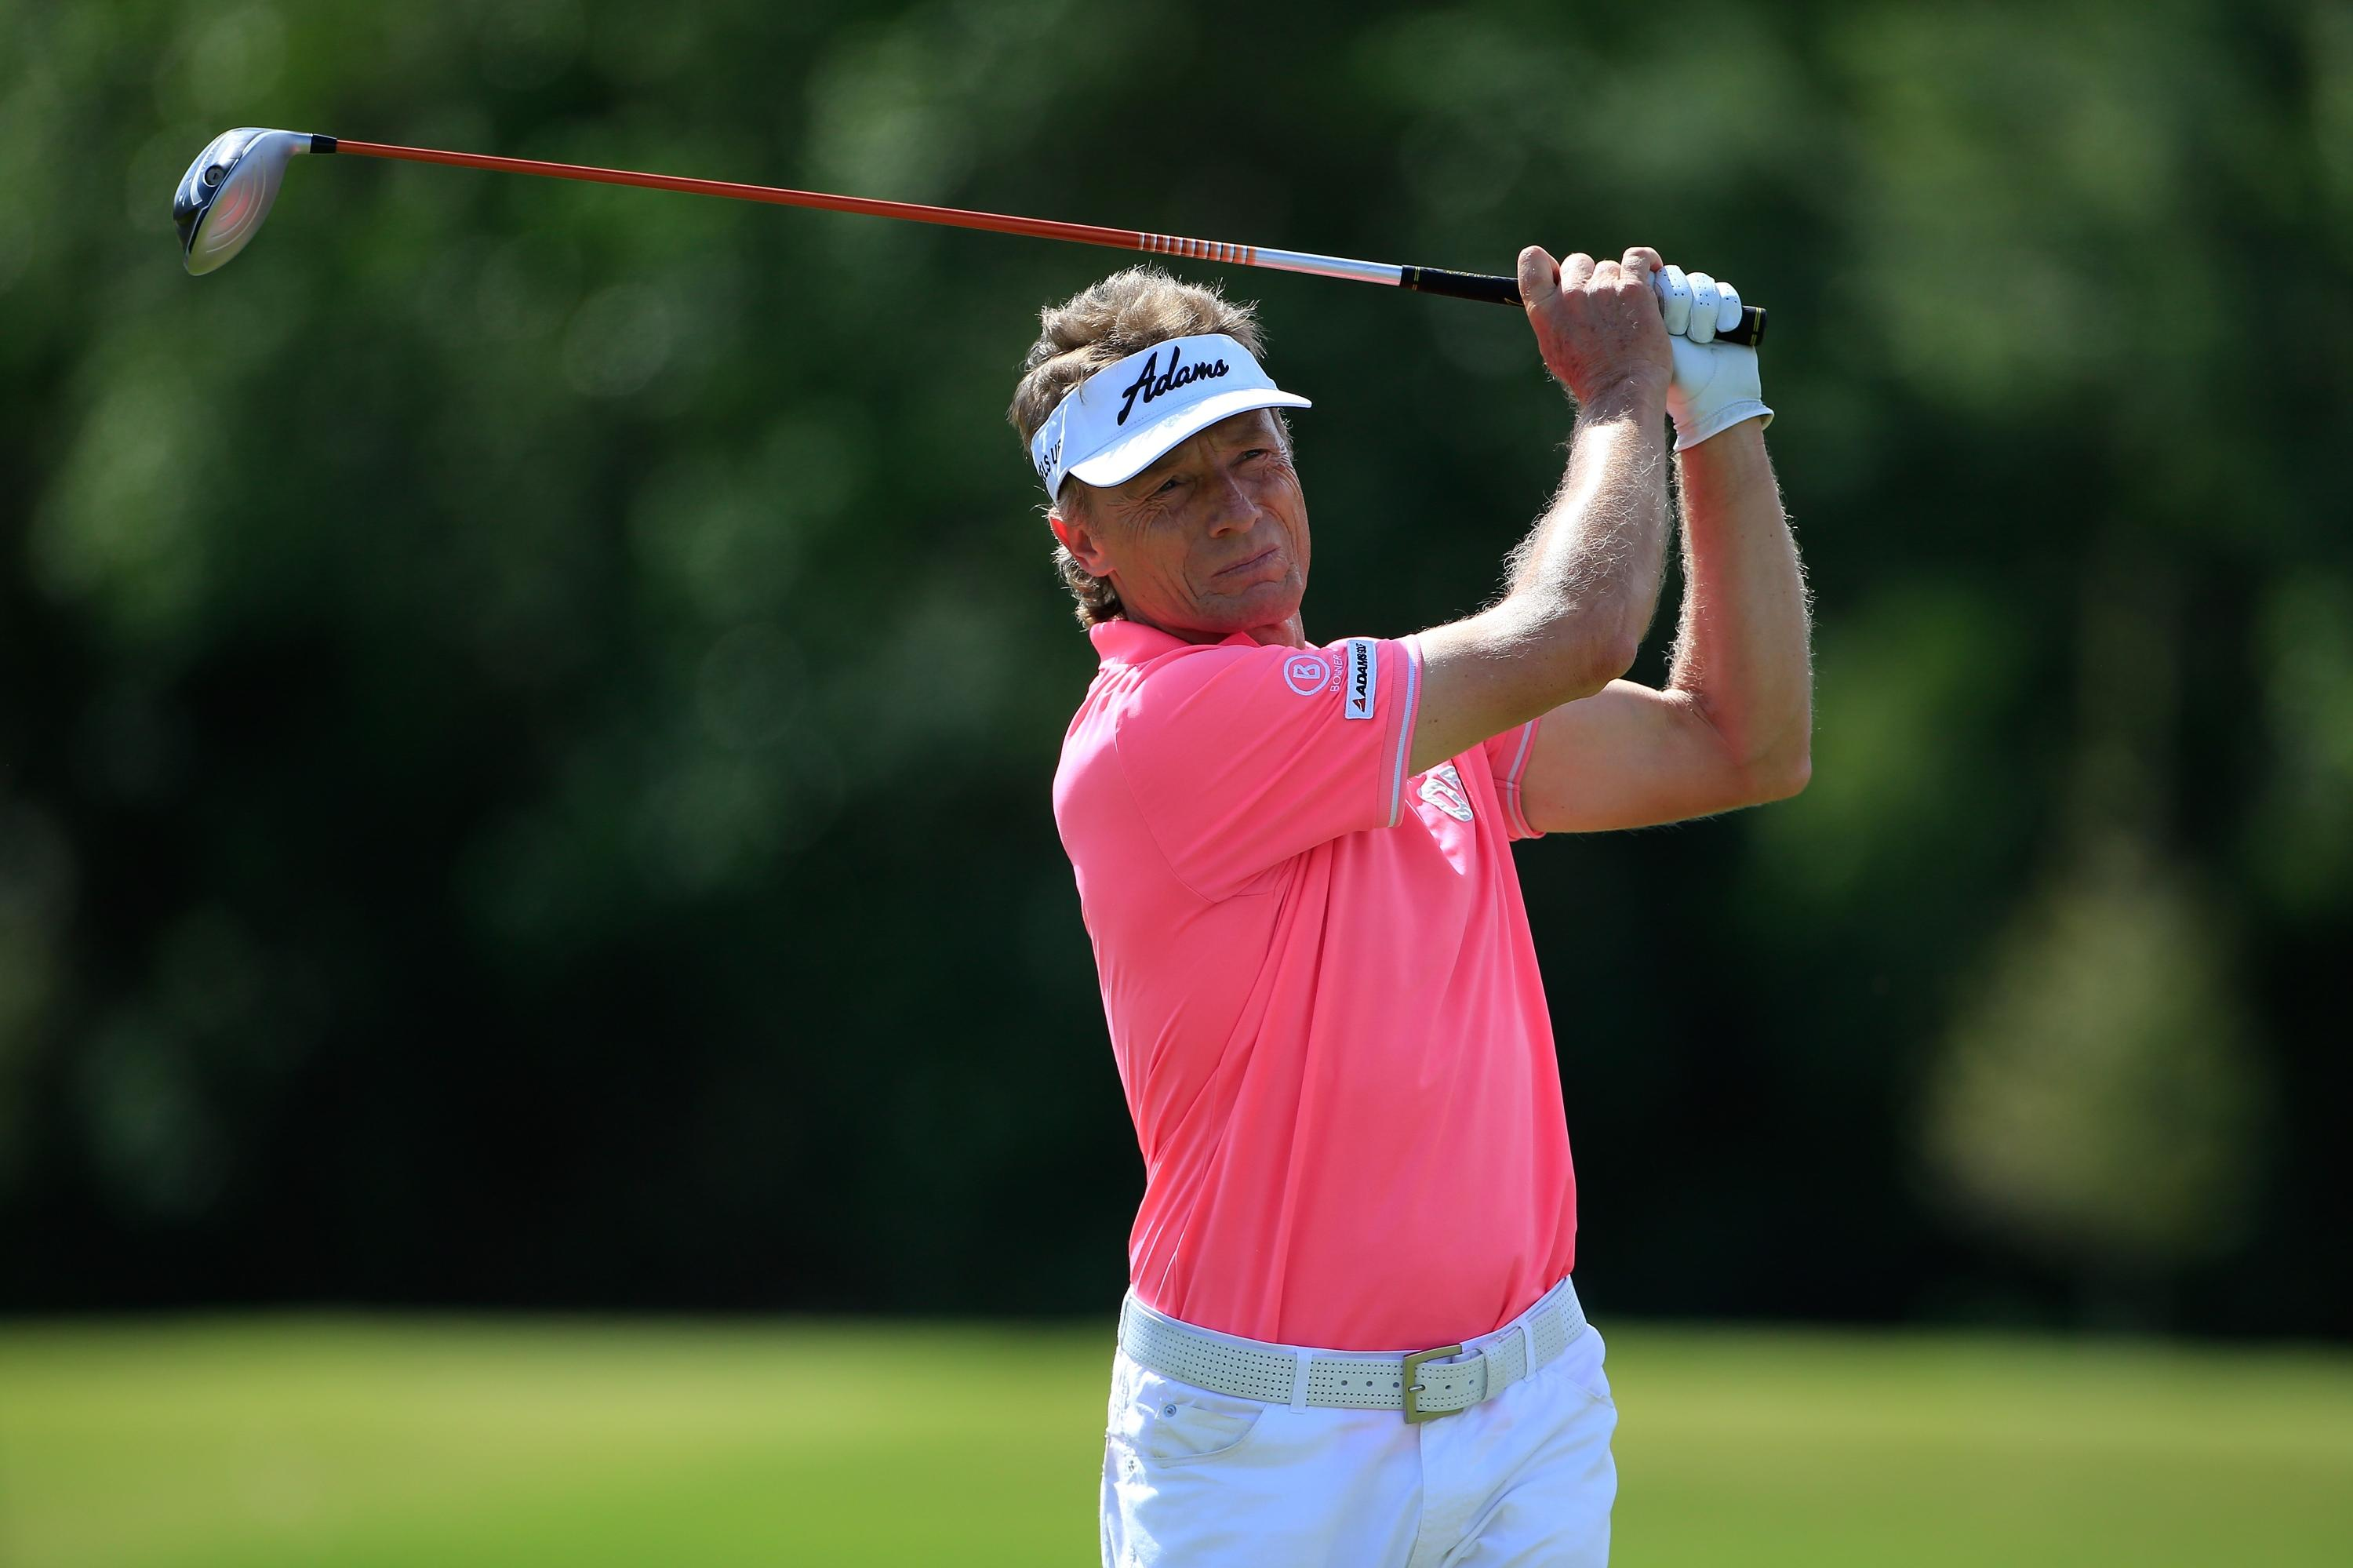 The 19th Hole Golf Show: A day with Bernhard Langer; when will Tiger play again?